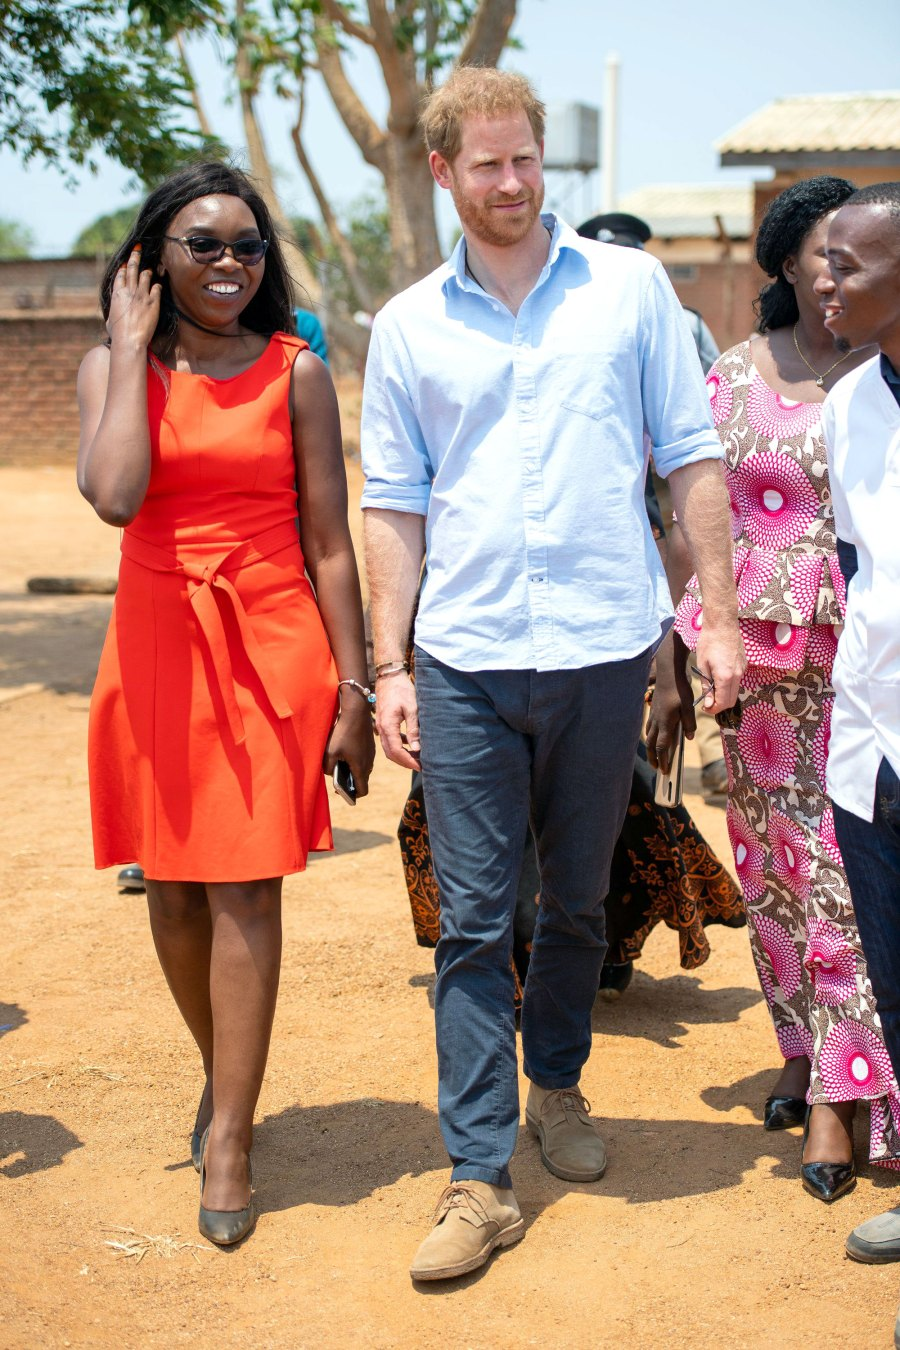 Prince Harry and Duchess Meghan Embark on Royal Tour of Africa Mauwa Health Centre in Blantyre, Malawi